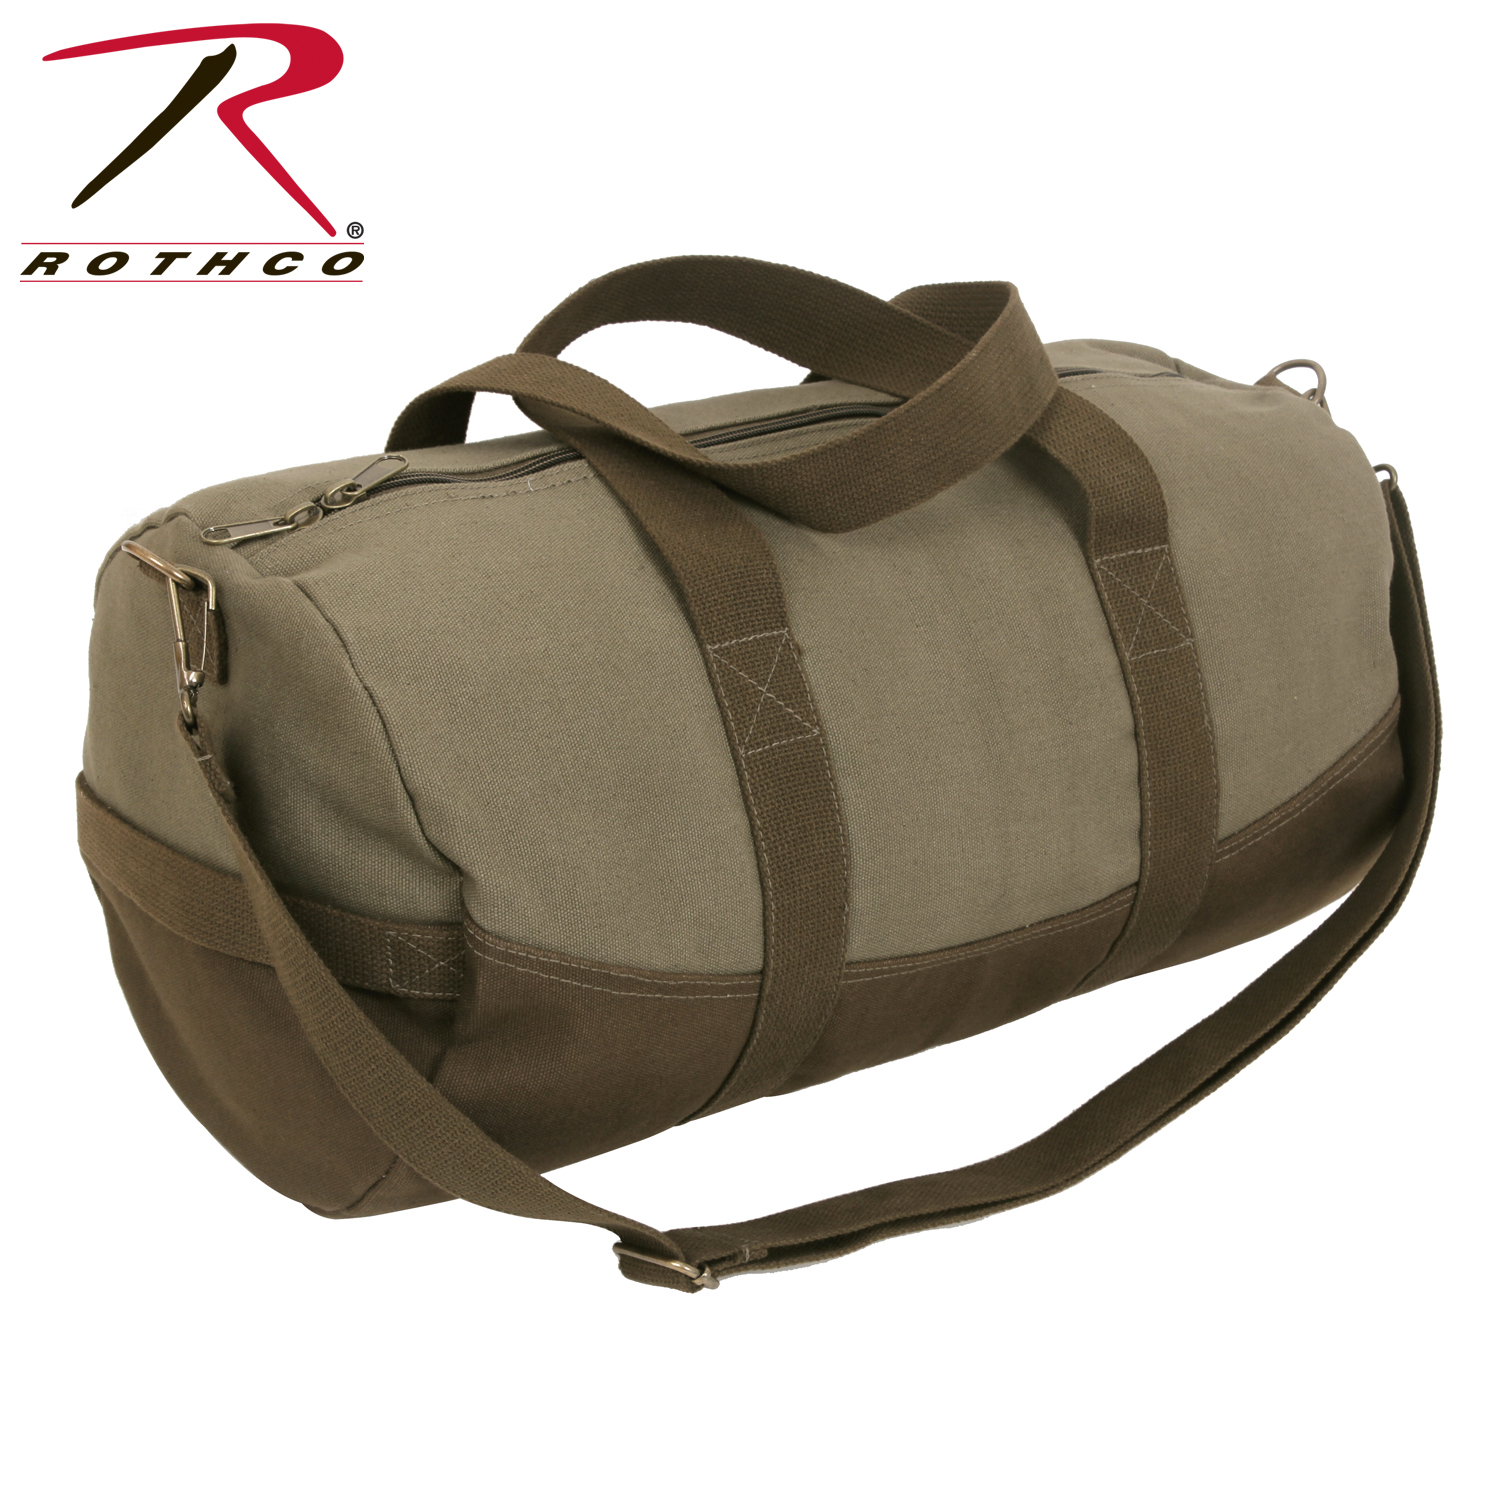 c8724ccfdbb4 Rothco Two-Tone Canvas Duffle Bag With Brown Bottom